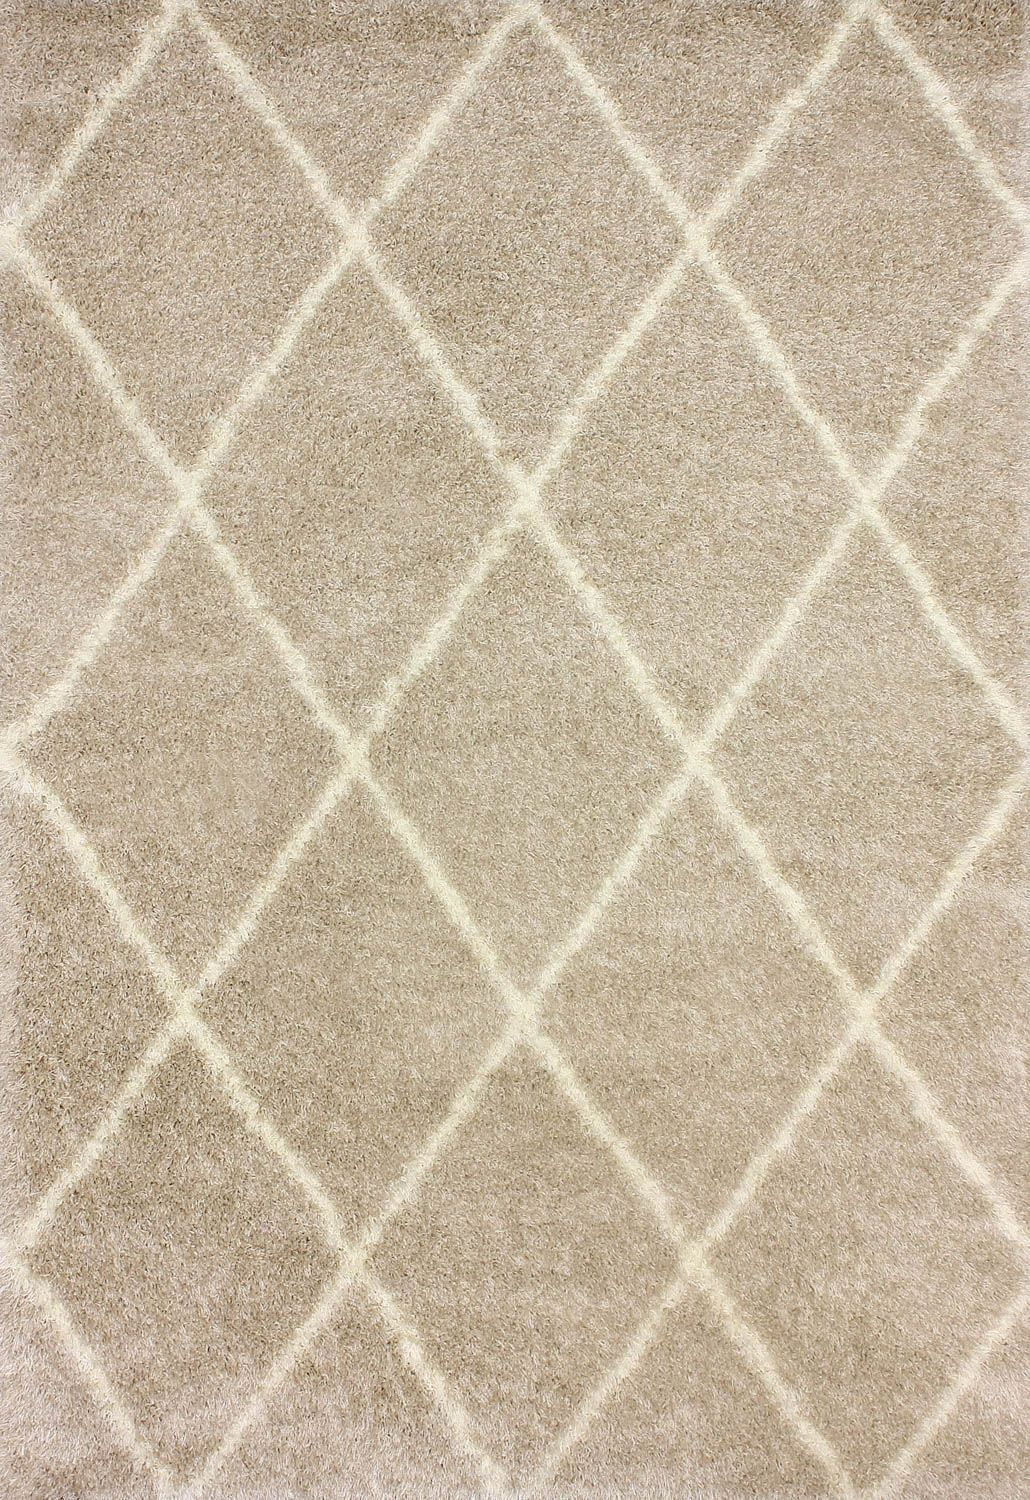 Rugs USA Moroccan Diamond Shag Beige Rug. Rugs USA Labor Day Sale up to 80% Off! Area rug, rug, carpet, design, style, home decor, interior design, pattern, trends, home, statement, fall, autumn, cozy, warm, sale, discount, interiors, house, free shipping, shag, fluffy.